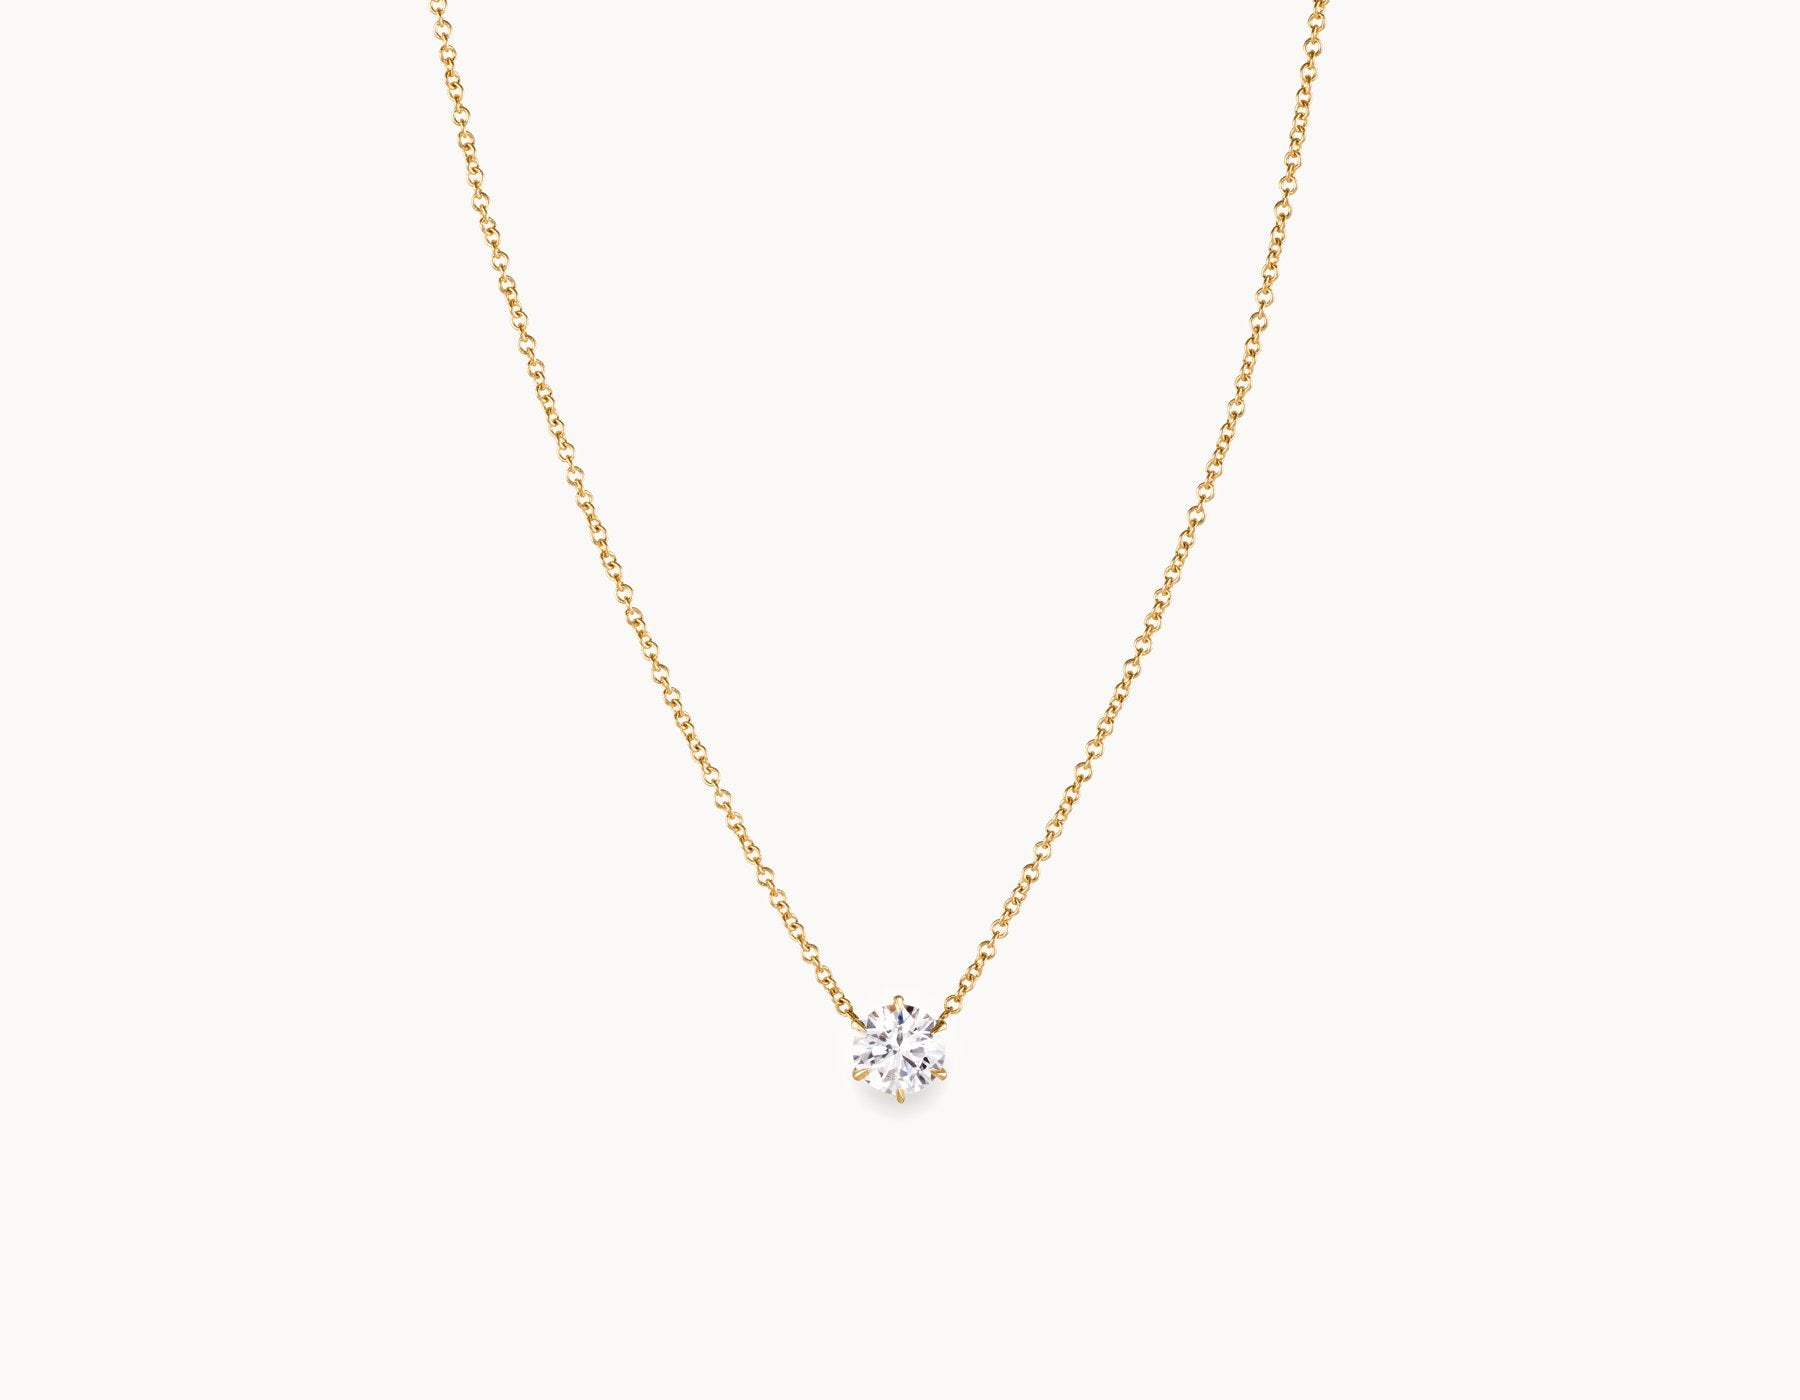 solitaire white diamond classic gold on prong necklaces pendant hearts necklace picture of product fire hof